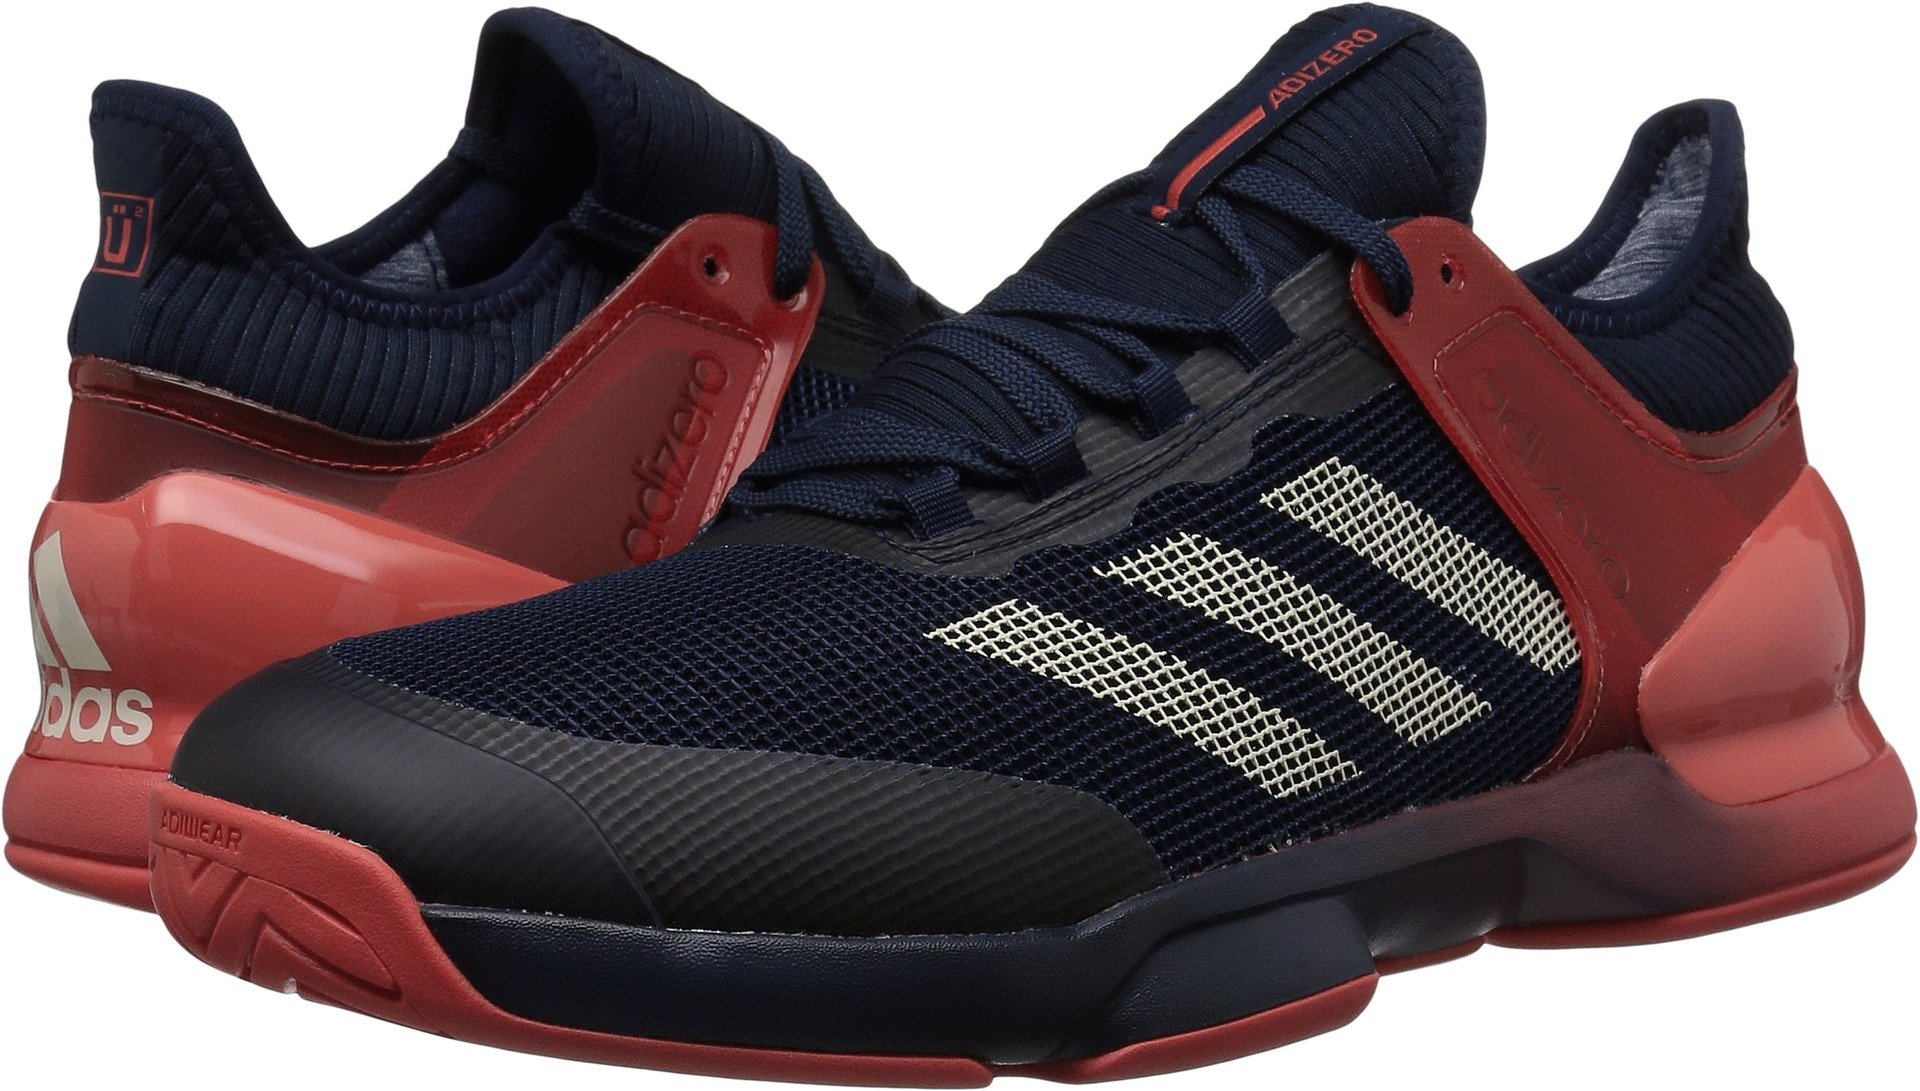 adidas Performance Men's Adizero Ubersonic 2 Tennis Shoe, Night Navy/Ecru Tint/Trace Scarlet, 11.5 M US by adidas